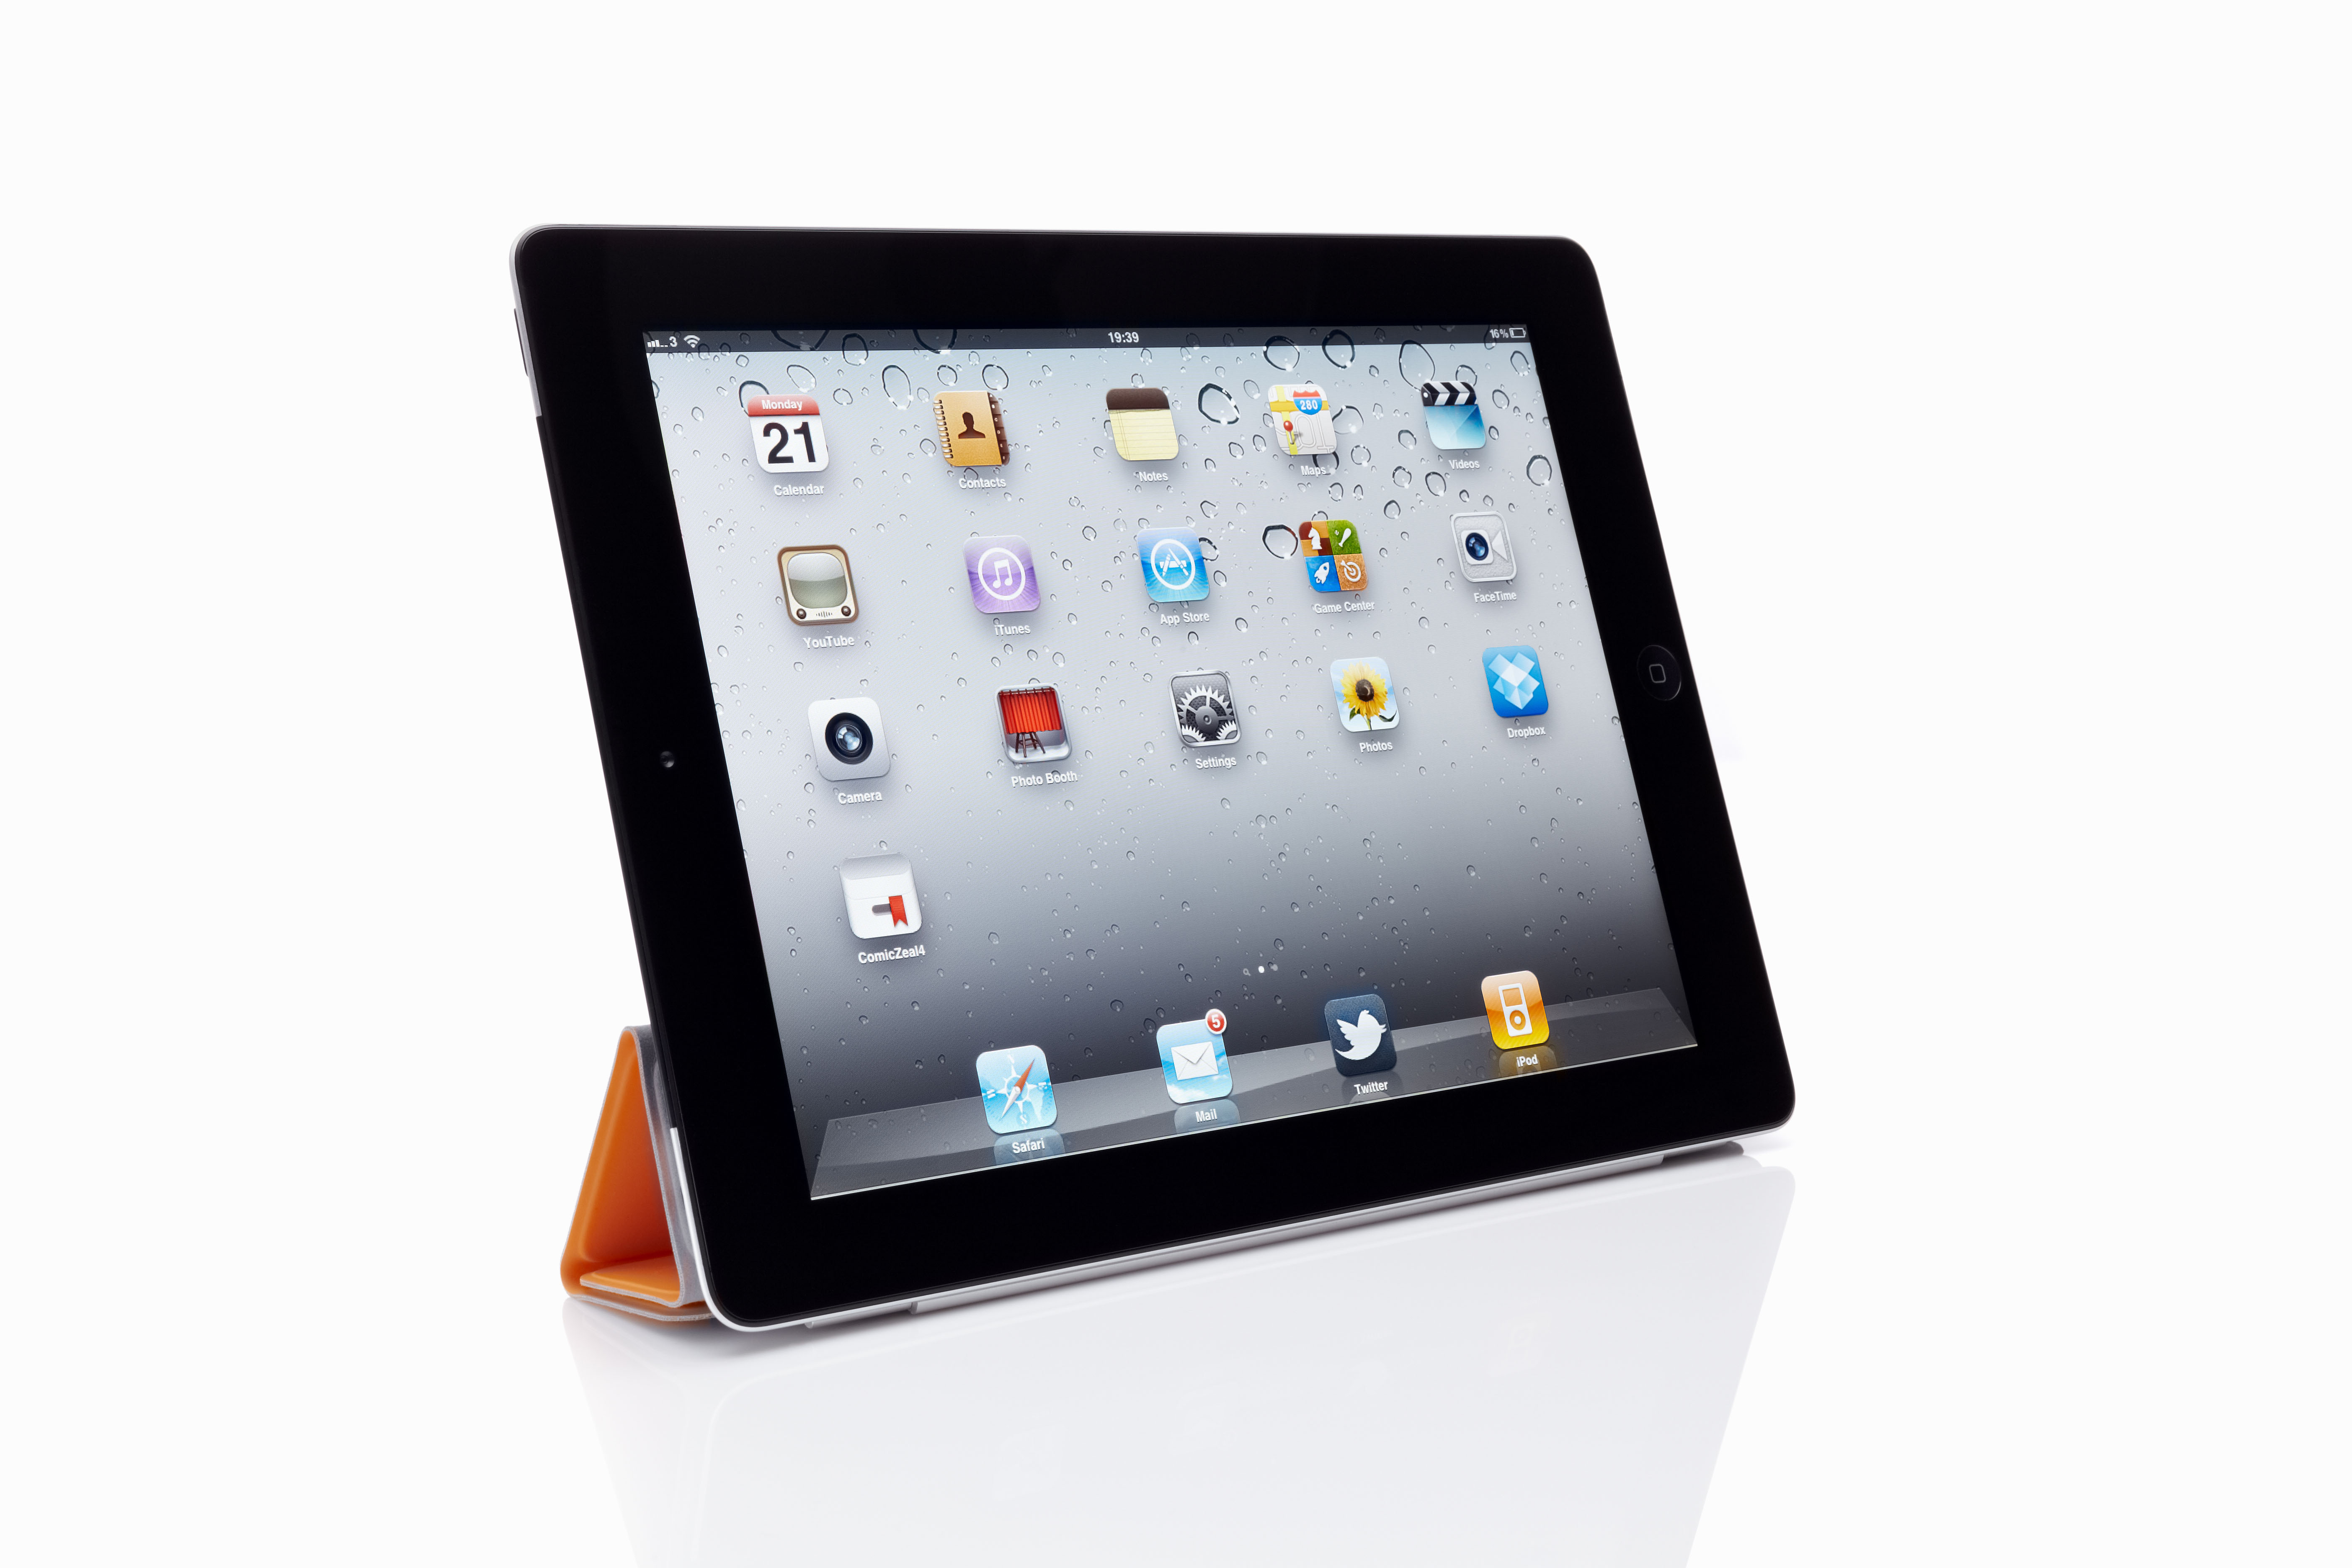 apple ipad's product development approach The ipad¶s marketing is as far as ipad is concerned the company has been adopting market penetration and product development apple i ad is a new product.